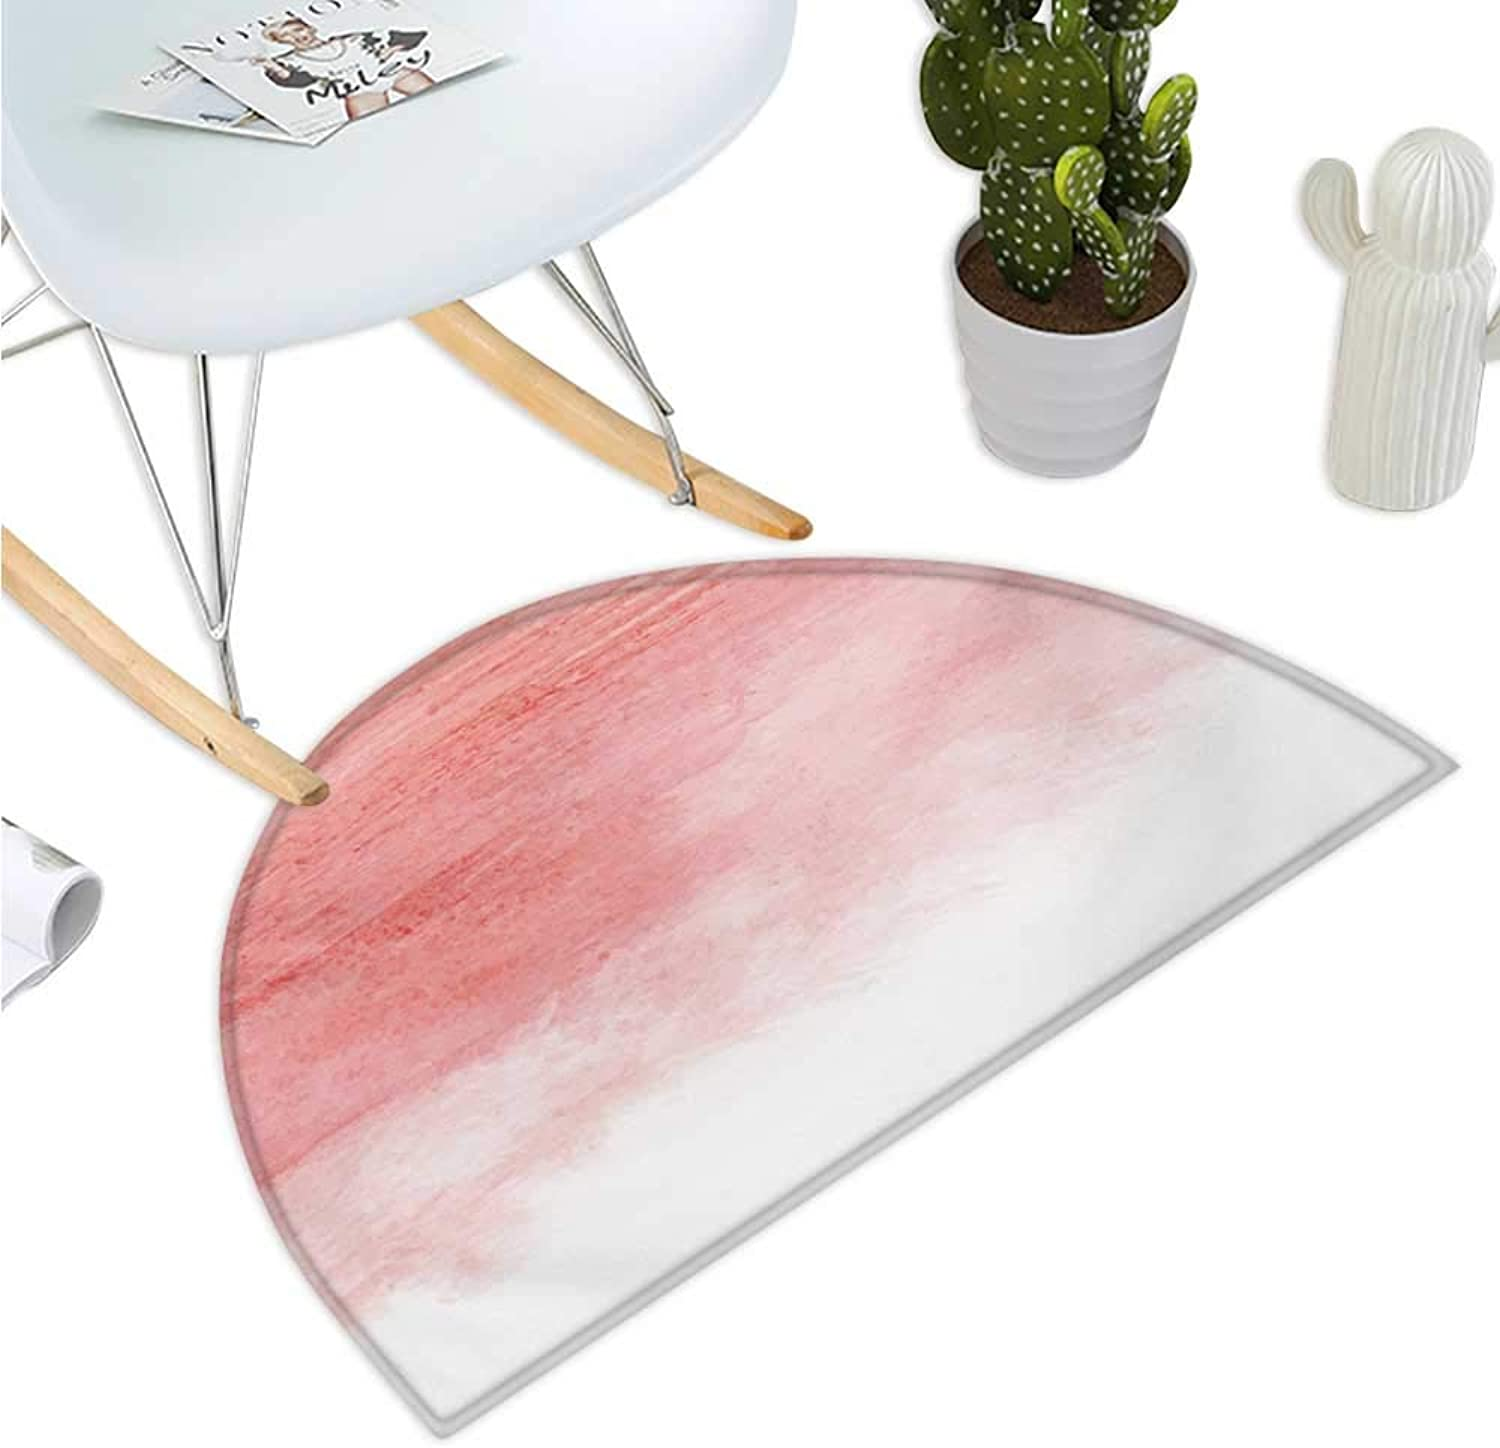 Peach Half Round Door mats Hand Drawn Watercolor Style with Brush Strokes with Ombre Effect Artistic Print Bathroom Mat H 47.2  xD 70.8  Coral White